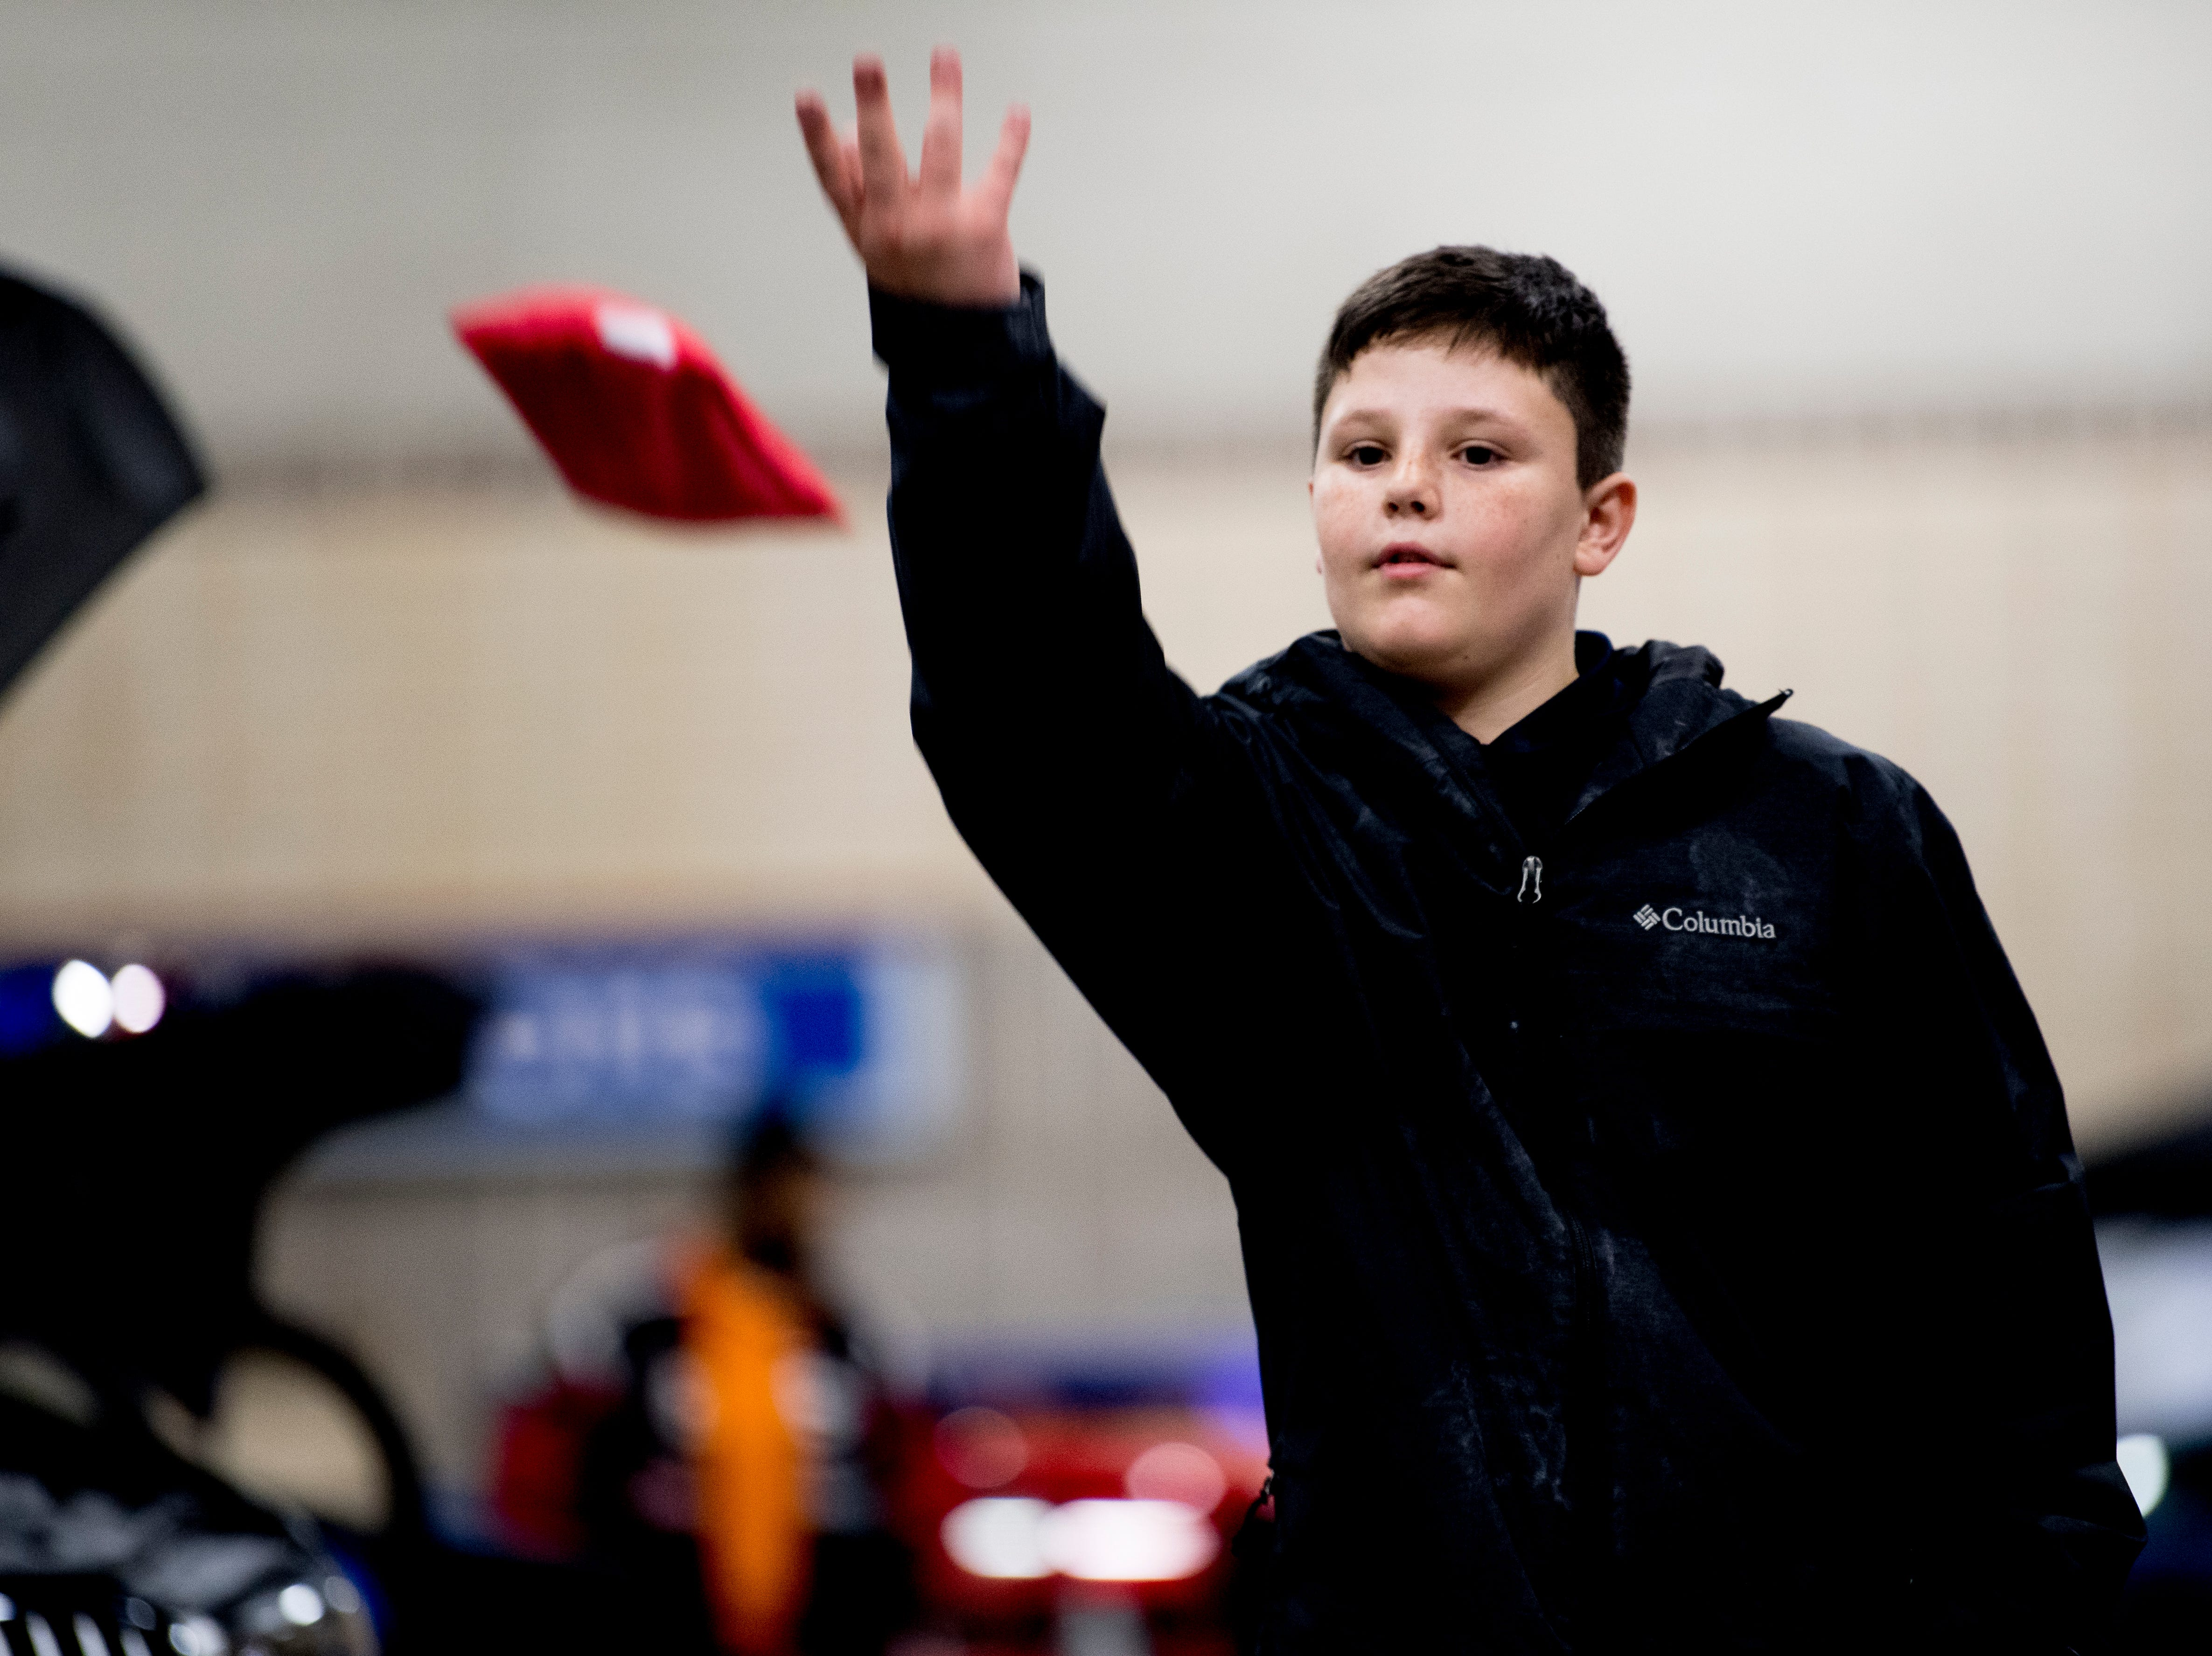 Isaac Evans plays corn hole with his sister at the Knox News Auto Show preview party in the Knoxville Convention Center in Knoxville, Tennessee on Thursday, February 21, 2019.